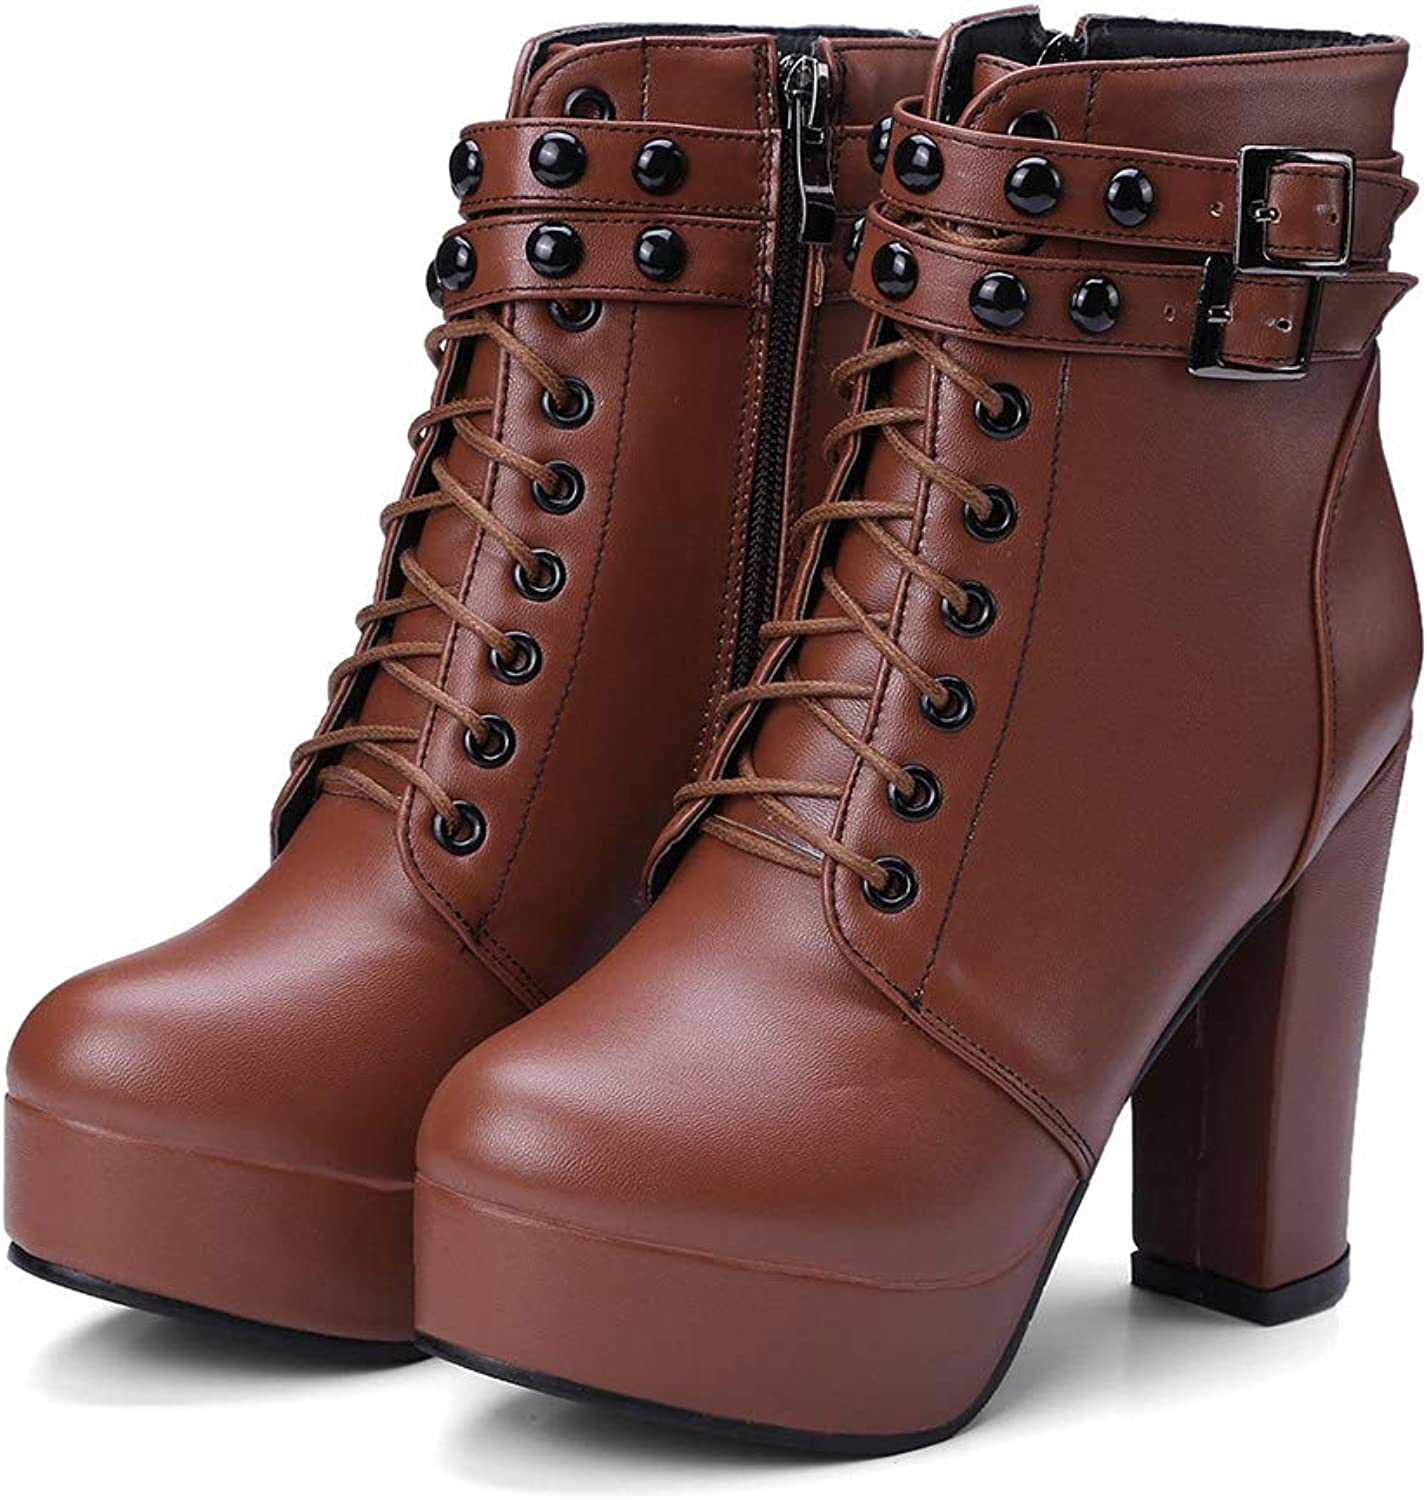 Women's shoes Comfort Basic Pump Boots Walking shoes Chunky Heel Platform Ankle Boots for Fall Winter